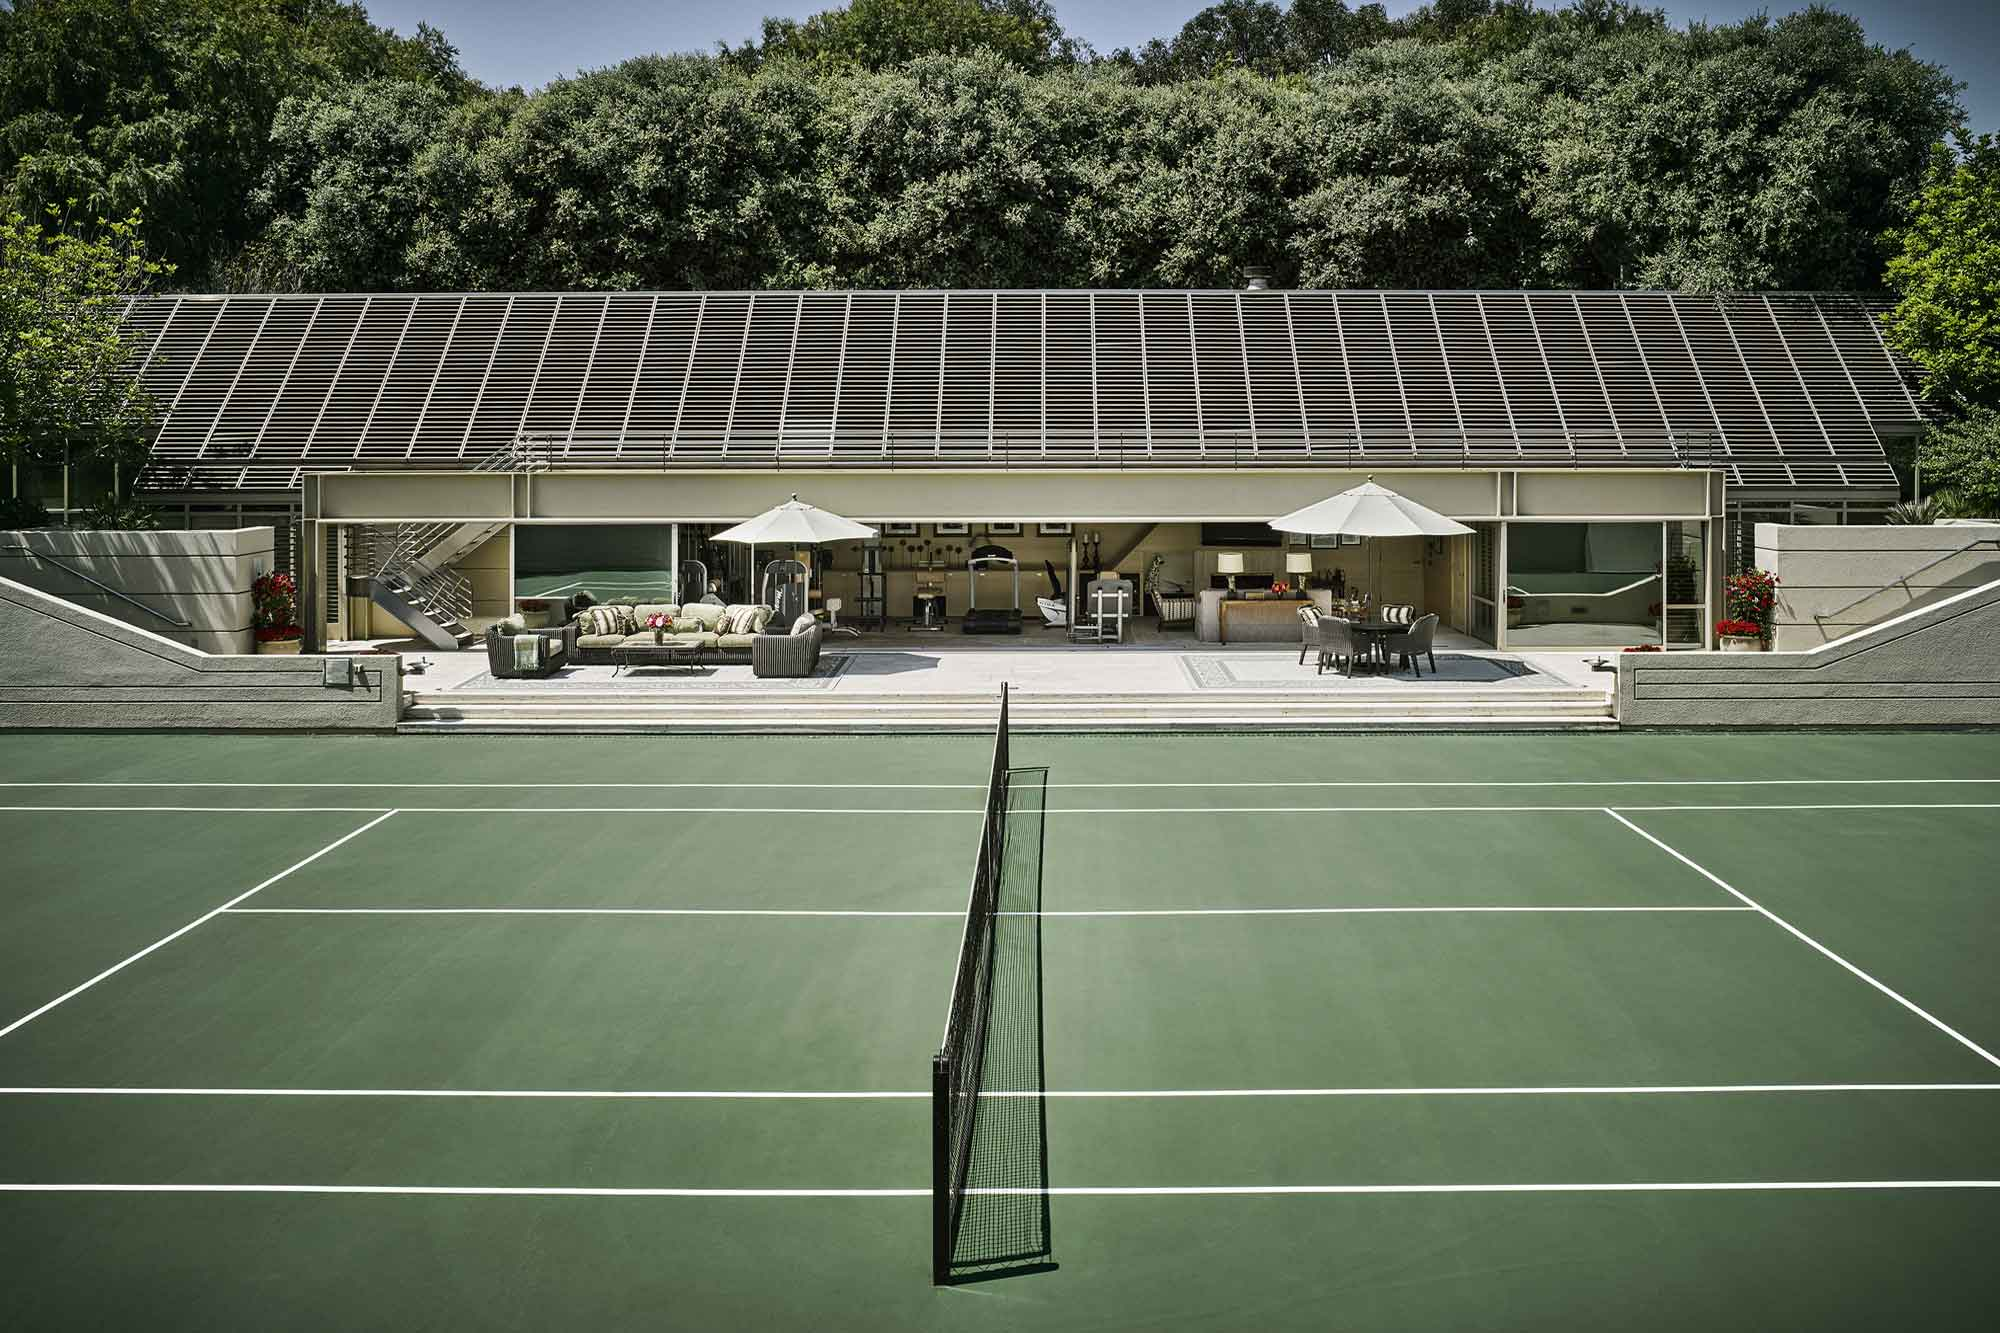 This immaculate tennis court was installed by NBC as a gift to Carson.